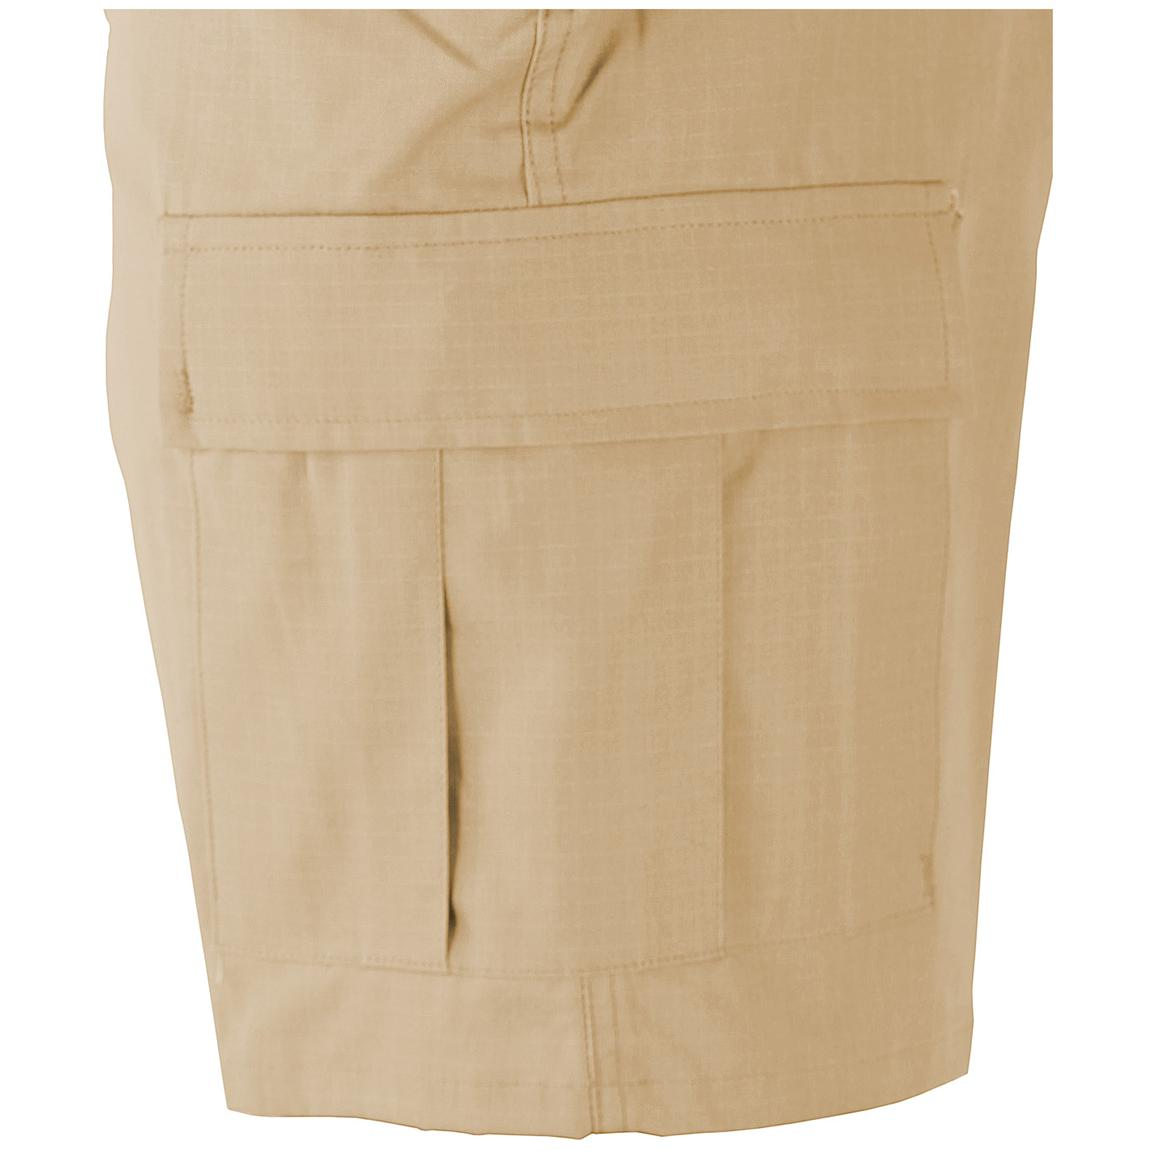 Two cargo pockets with button flaps and drainage holes